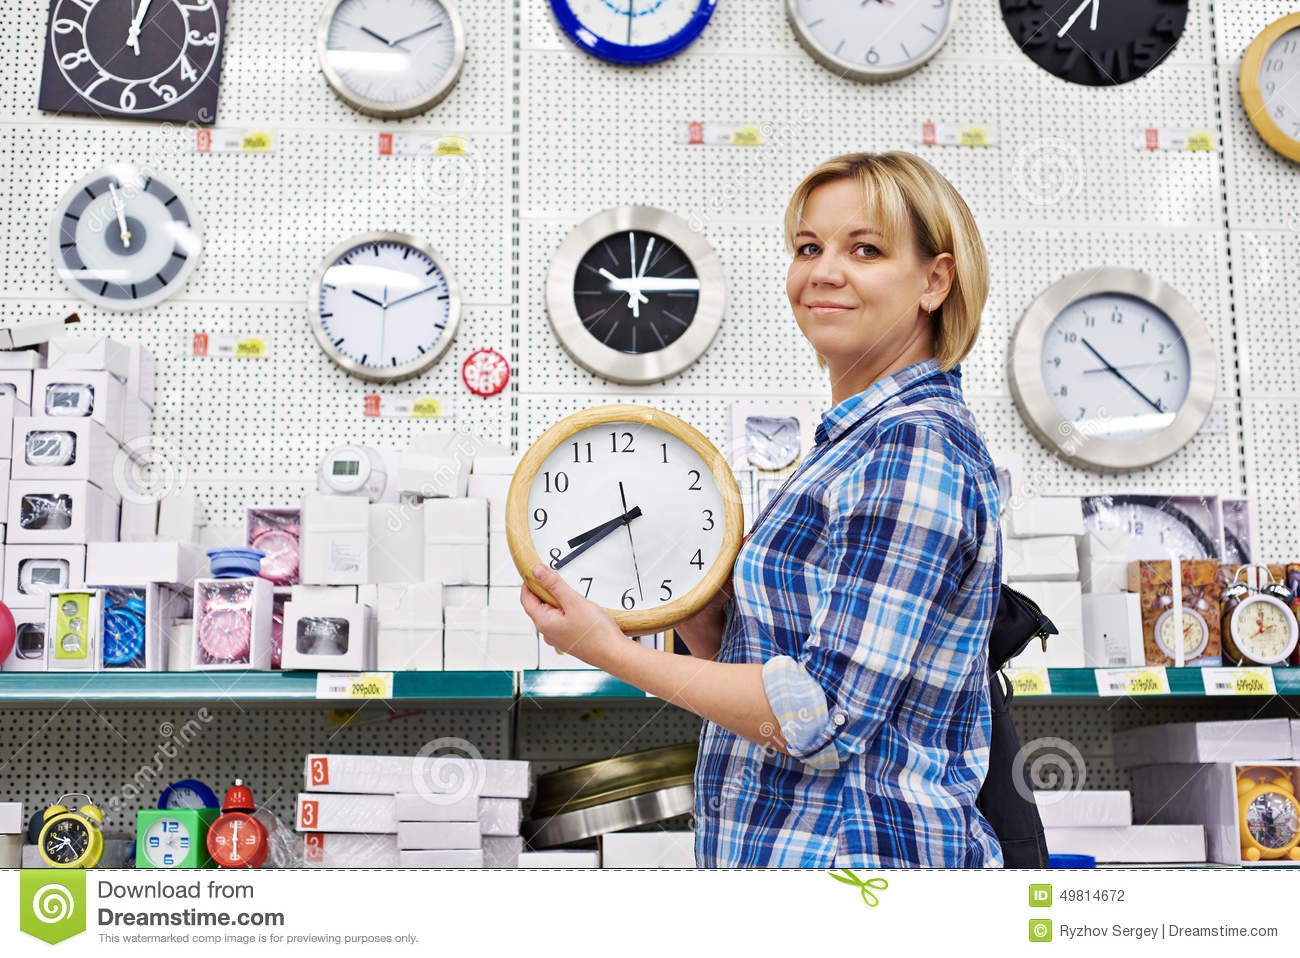 Wall clock stores gallery home wall decoration ideas wall clock stores images home wall decoration ideas wall clock stores choice image home wall decoration ideas wall clock stores choice image home wall amipublicfo Choice Image